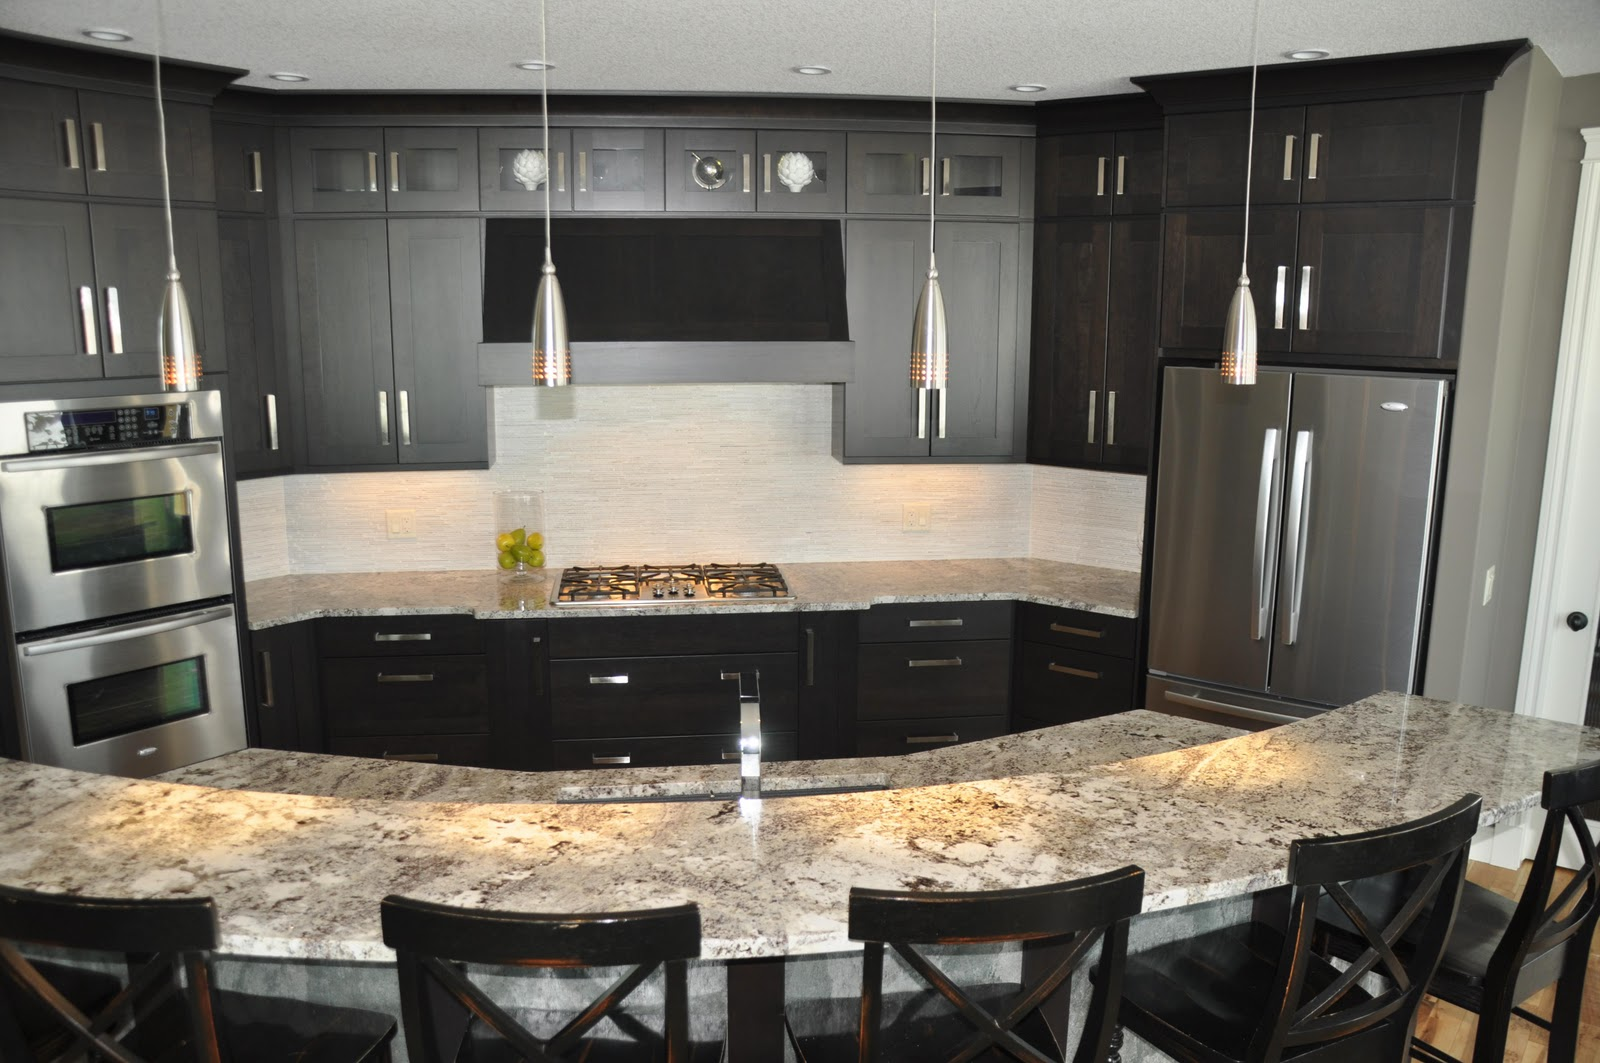 MY KITCHEN DESIGN @ Kitchen Ideas